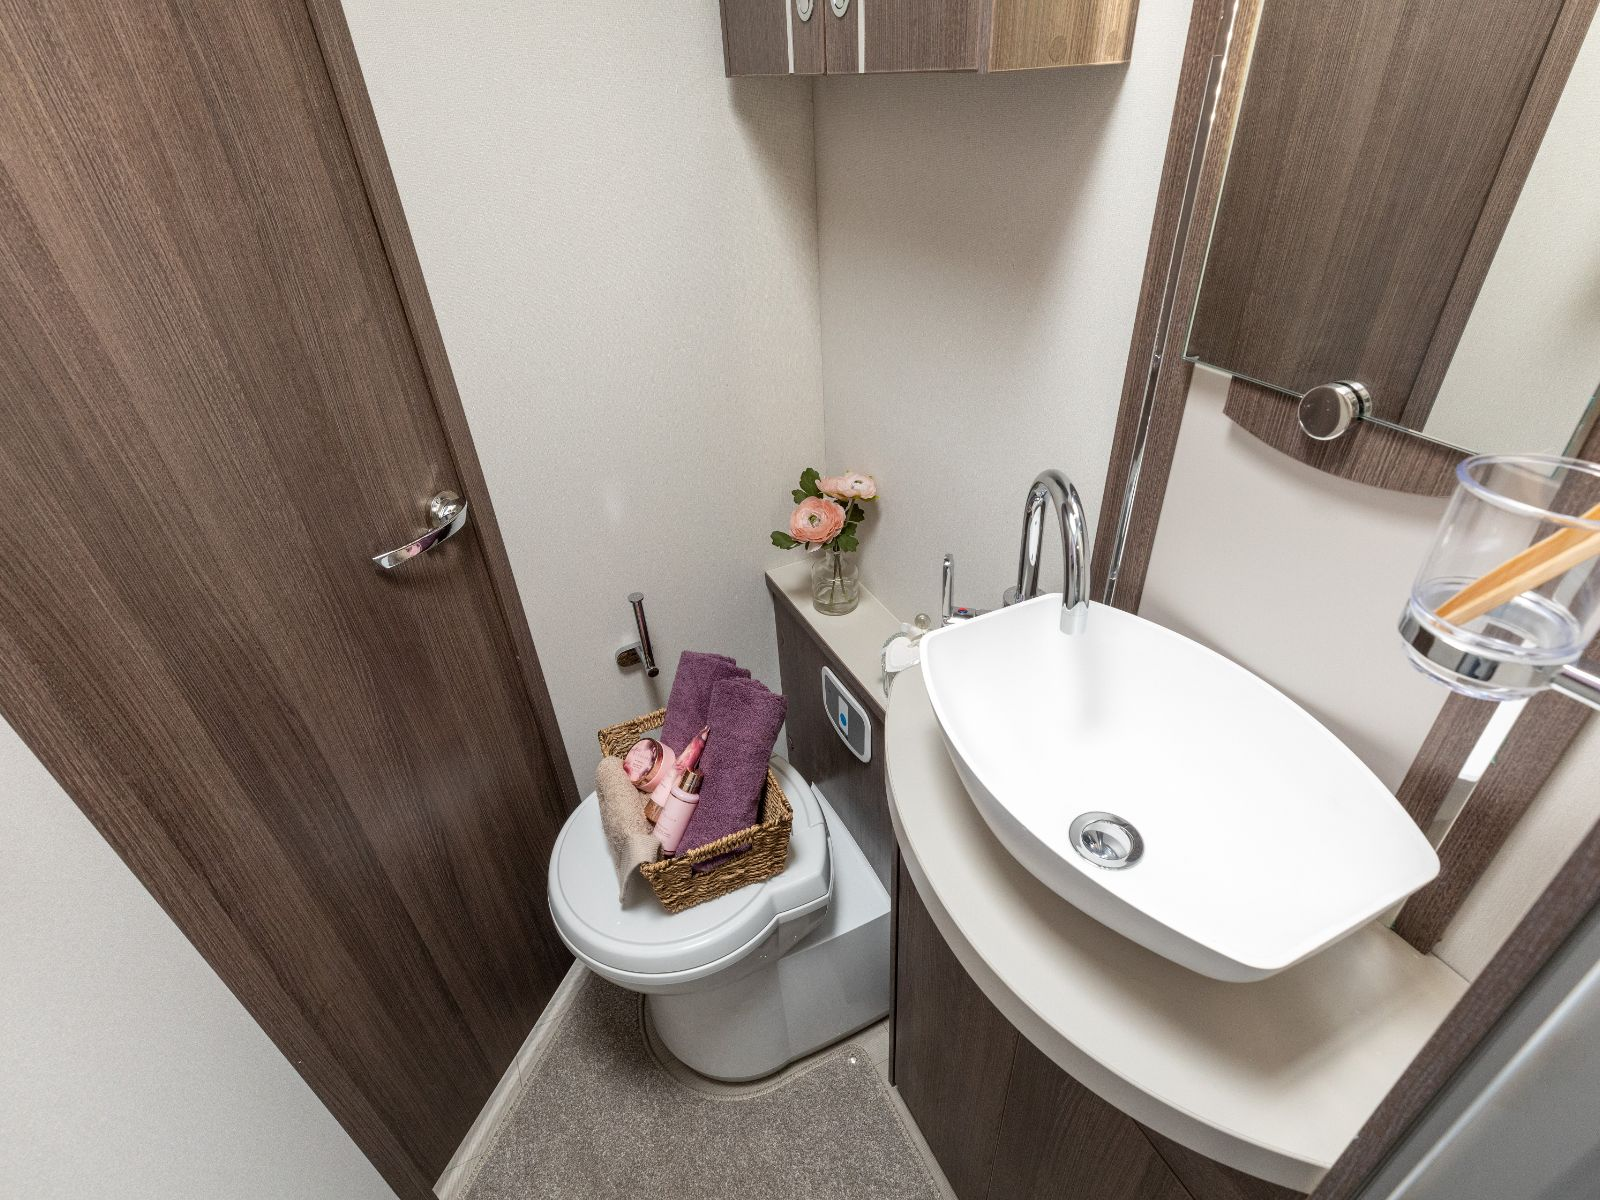 Bathroom layout with sink and toilet with toiletries on top'